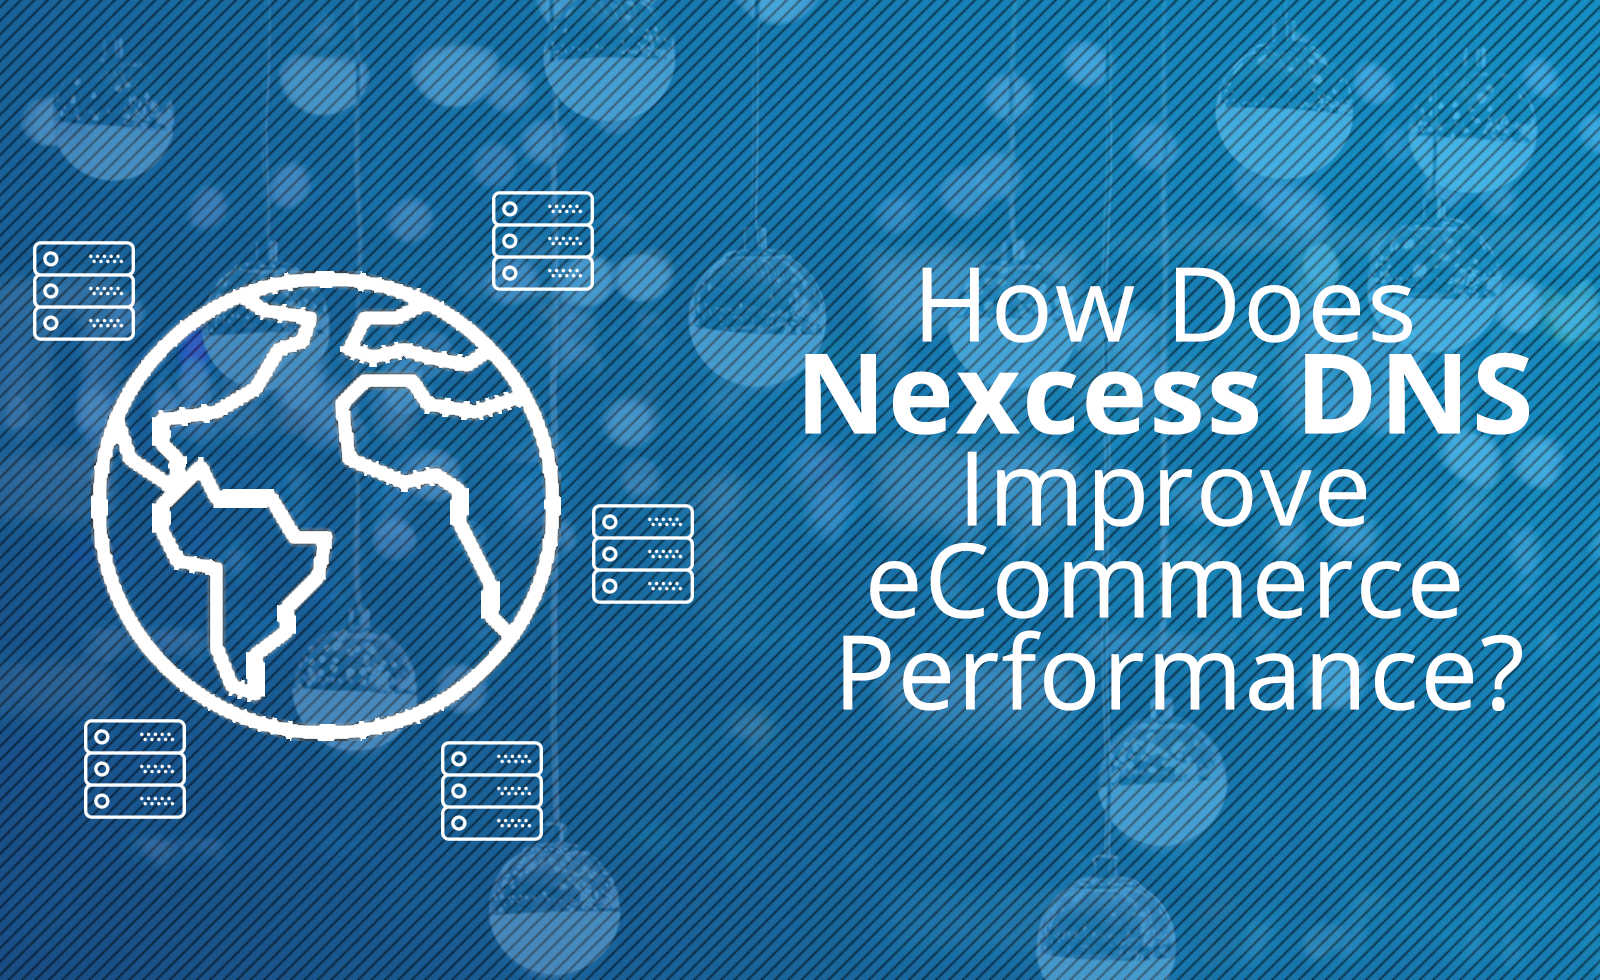 How Does Hostdedi DNS Improve eCommerce Performance?